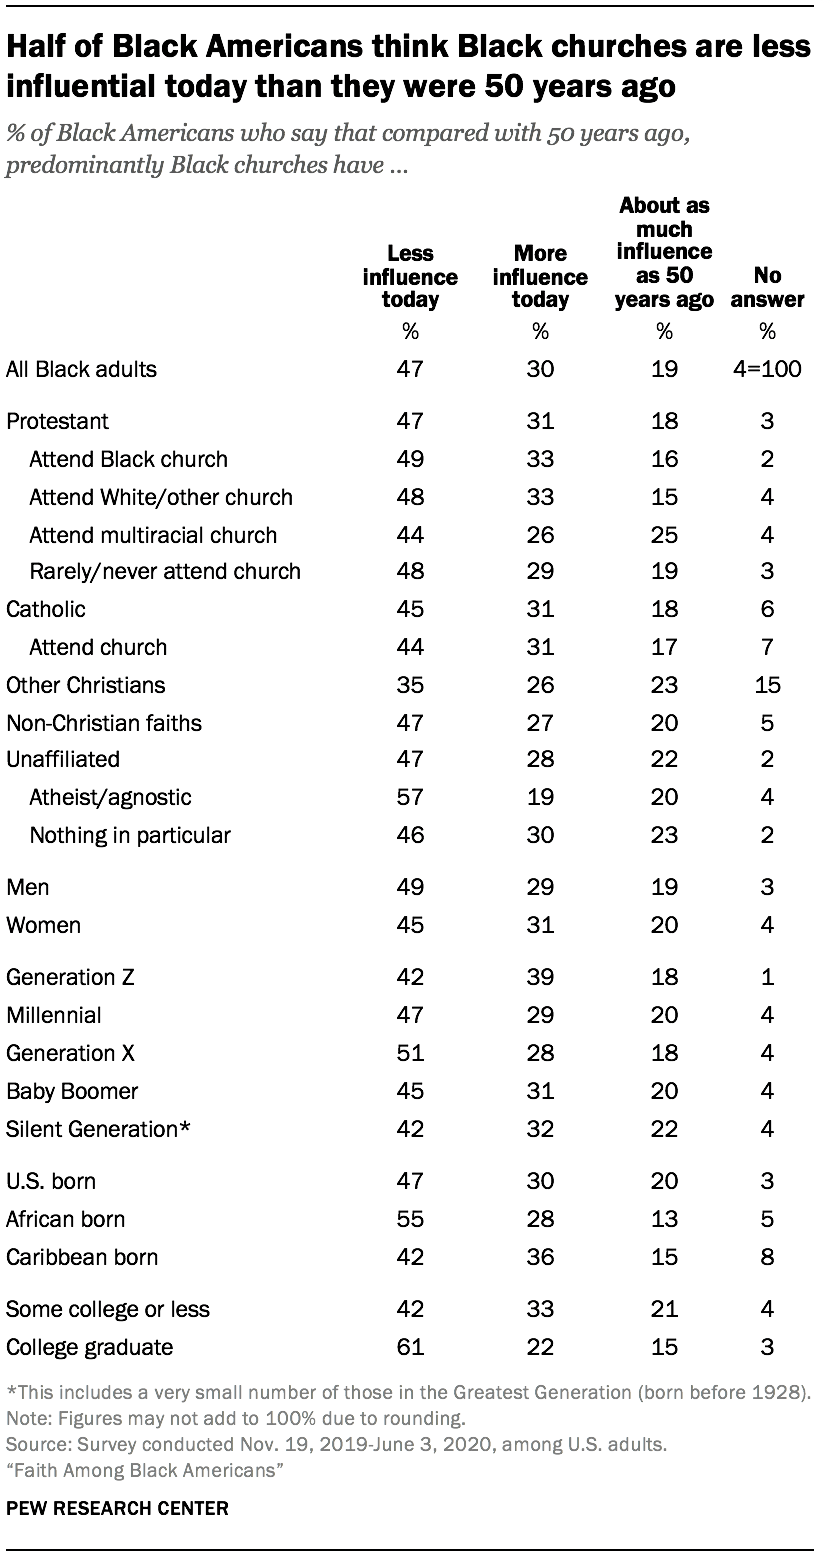 Half of Black Americans think Black churches are less influential today than they were 50 years ago